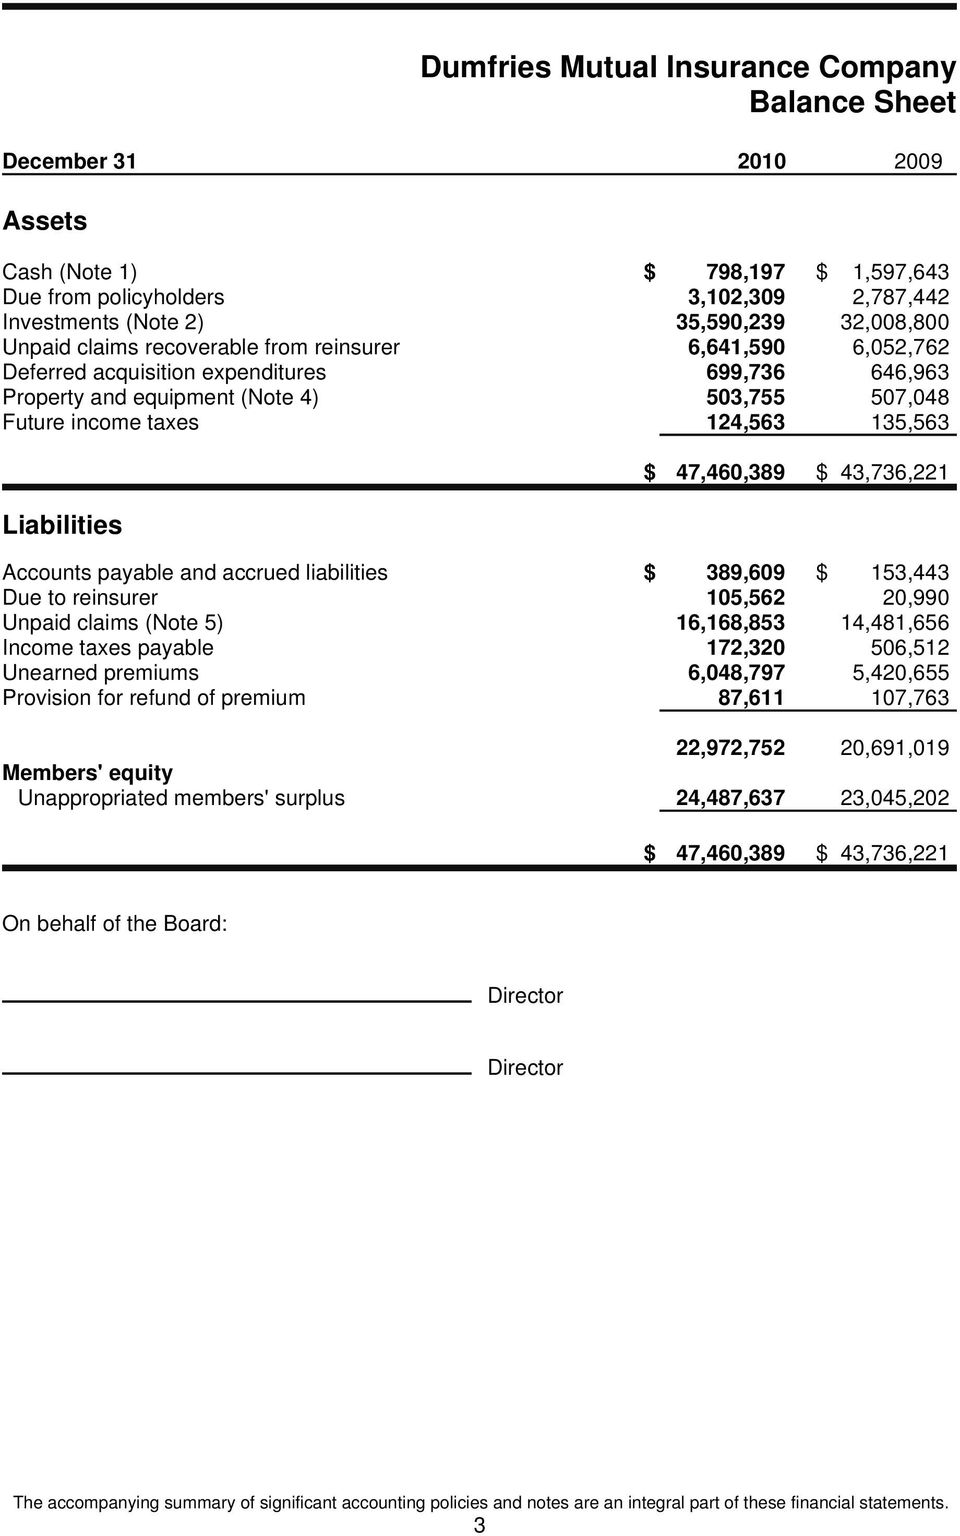 43,736,221 Accounts payable and accrued liabilities $ 389,609 $ 153,443 Due to reinsurer 105,562 20,990 Unpaid claims (Note 5) 16,168,853 14,481,656 Income taxes payable 172,320 506,512 Unearned